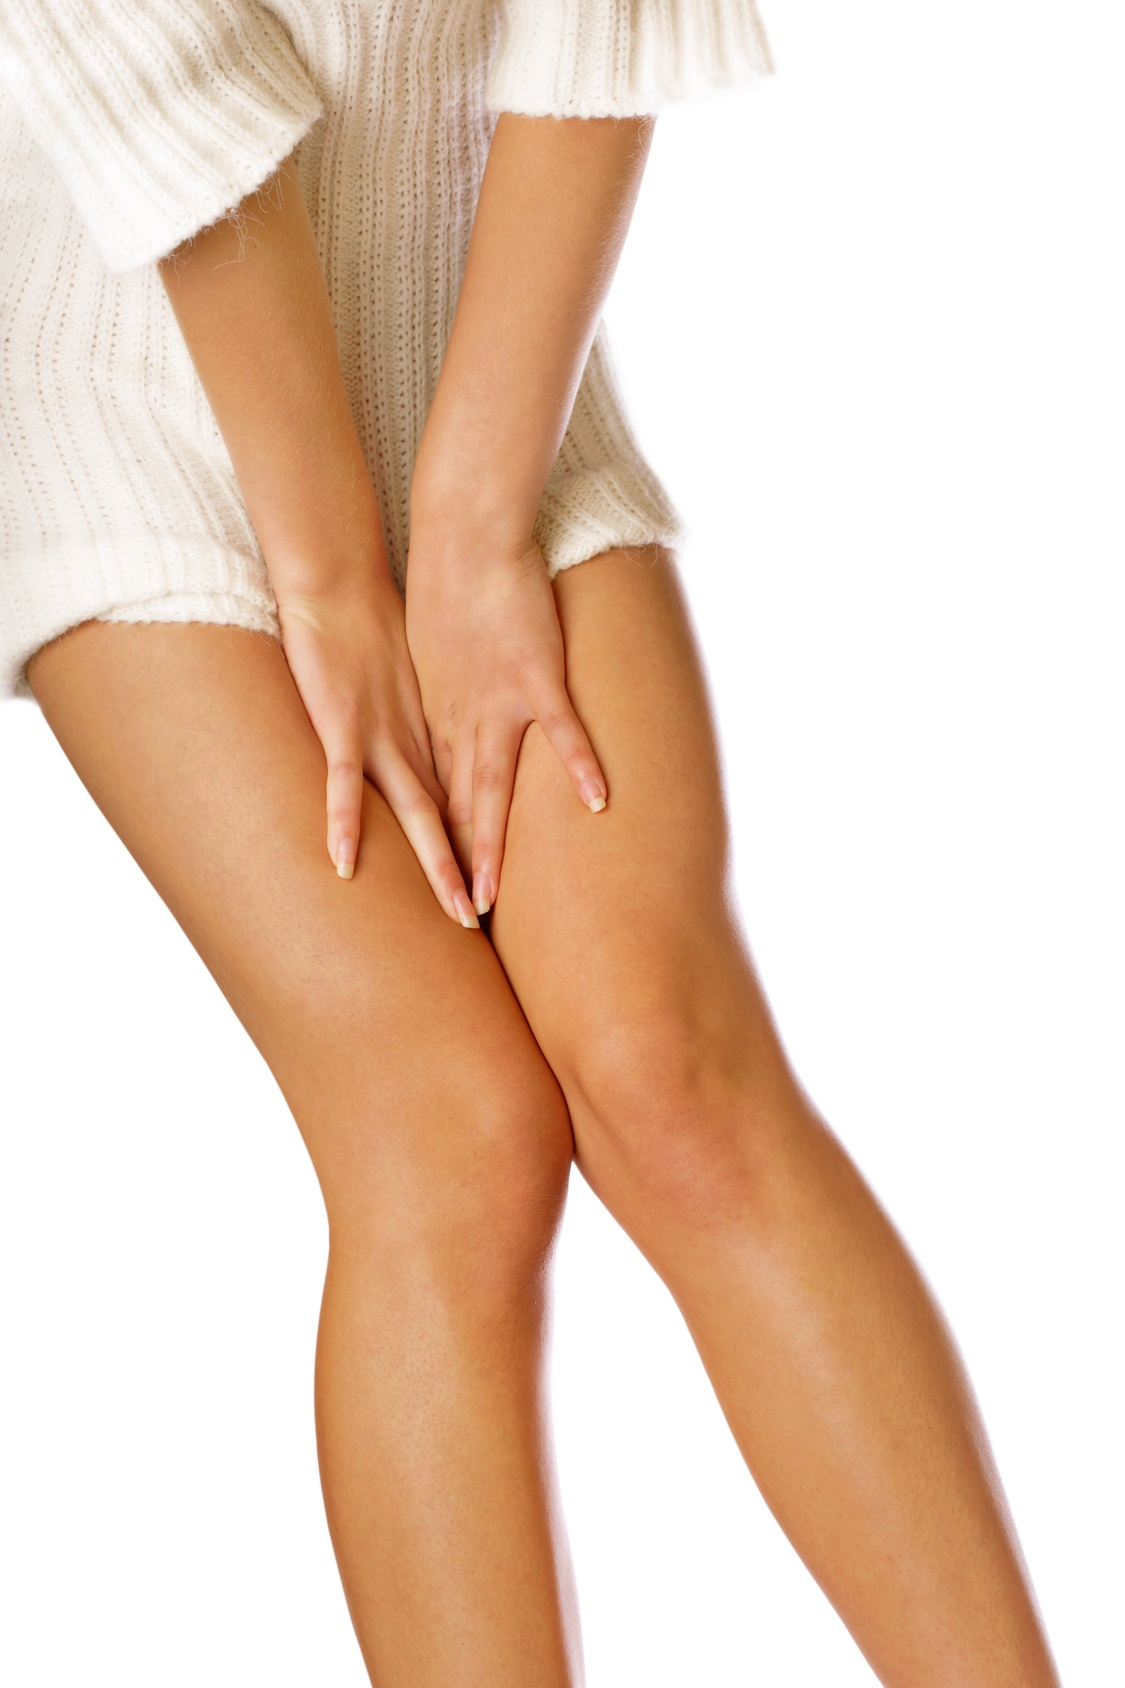 Thigh liposuction – Does it help?